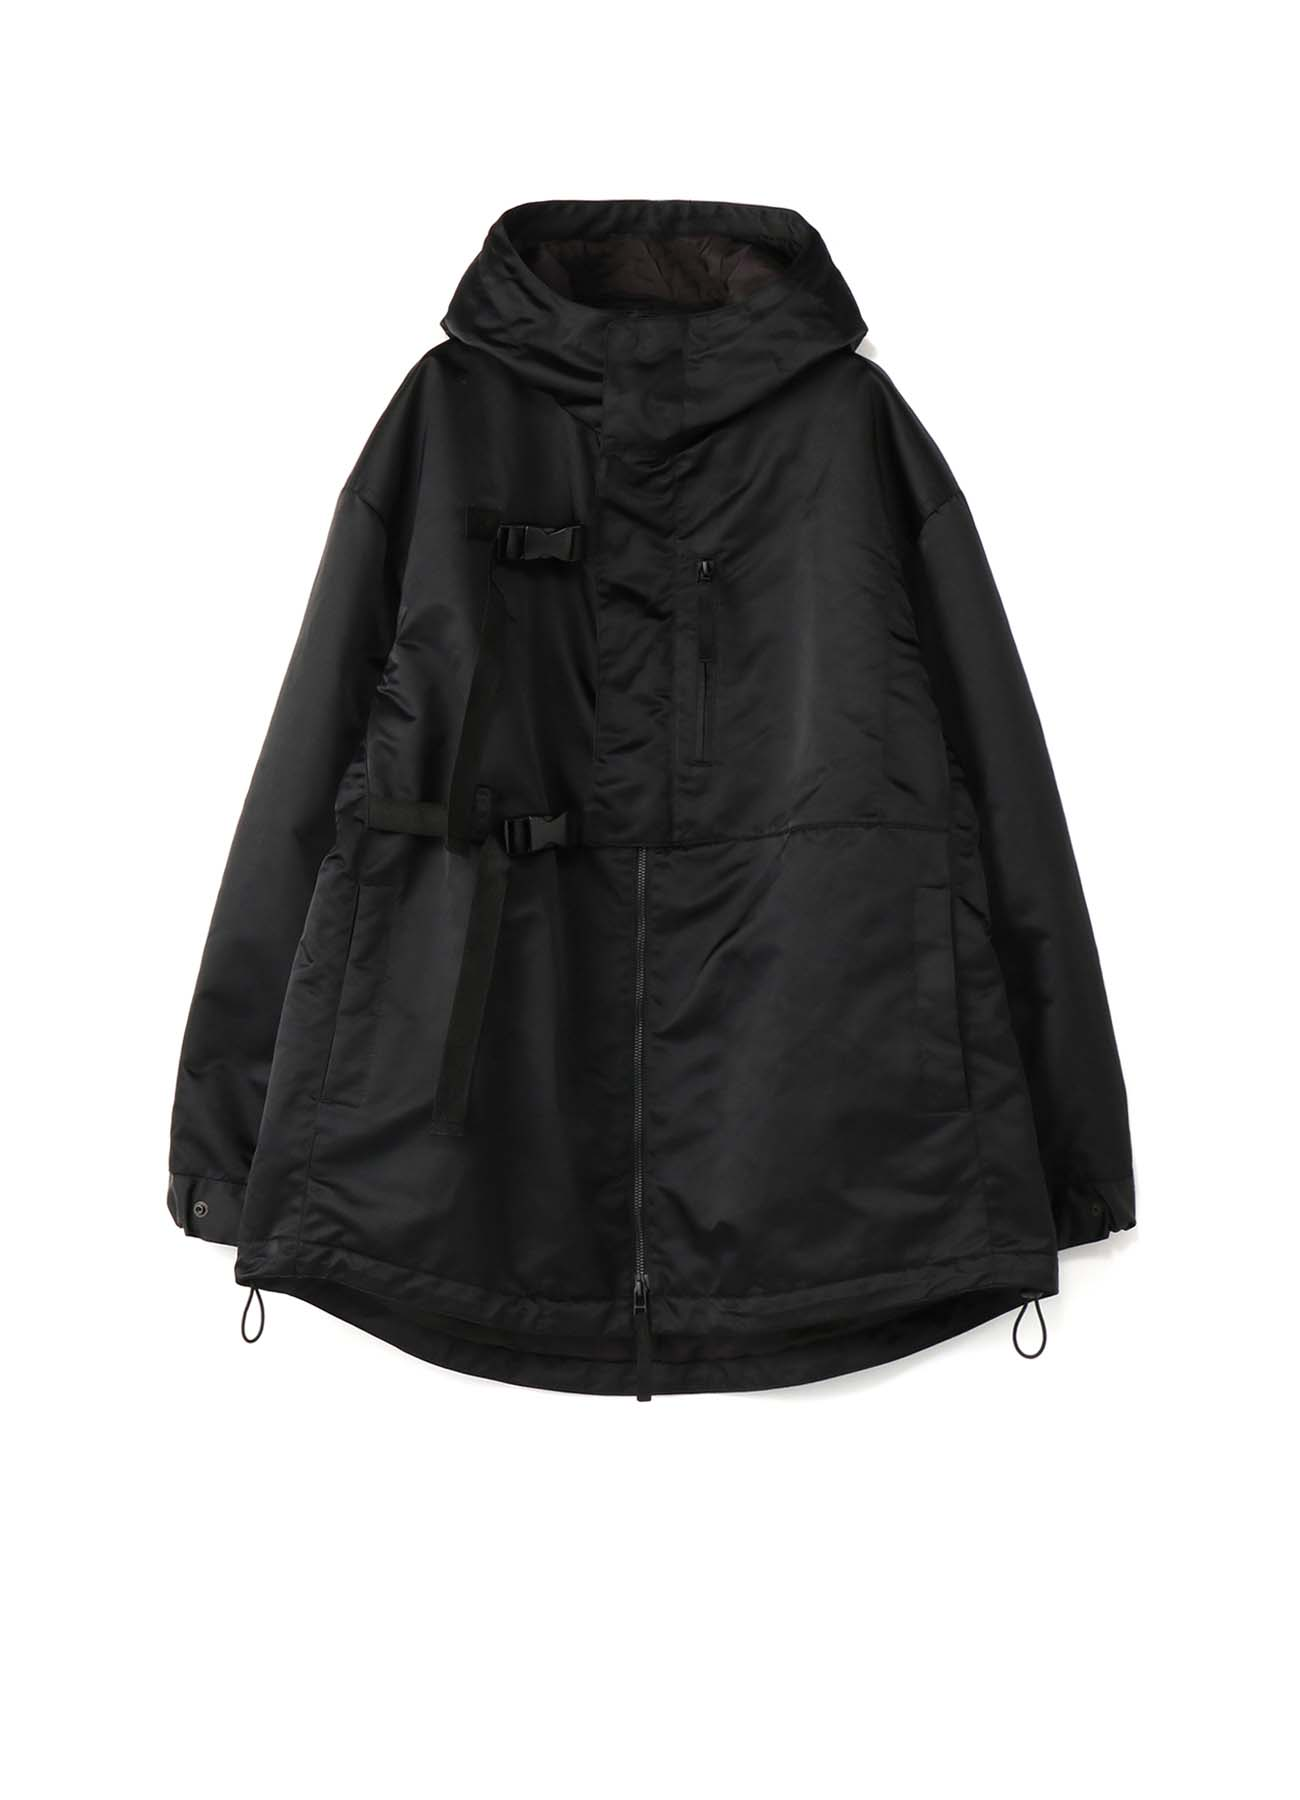 Nylon Twill Storm Shield Double Buckle Shell Jacket